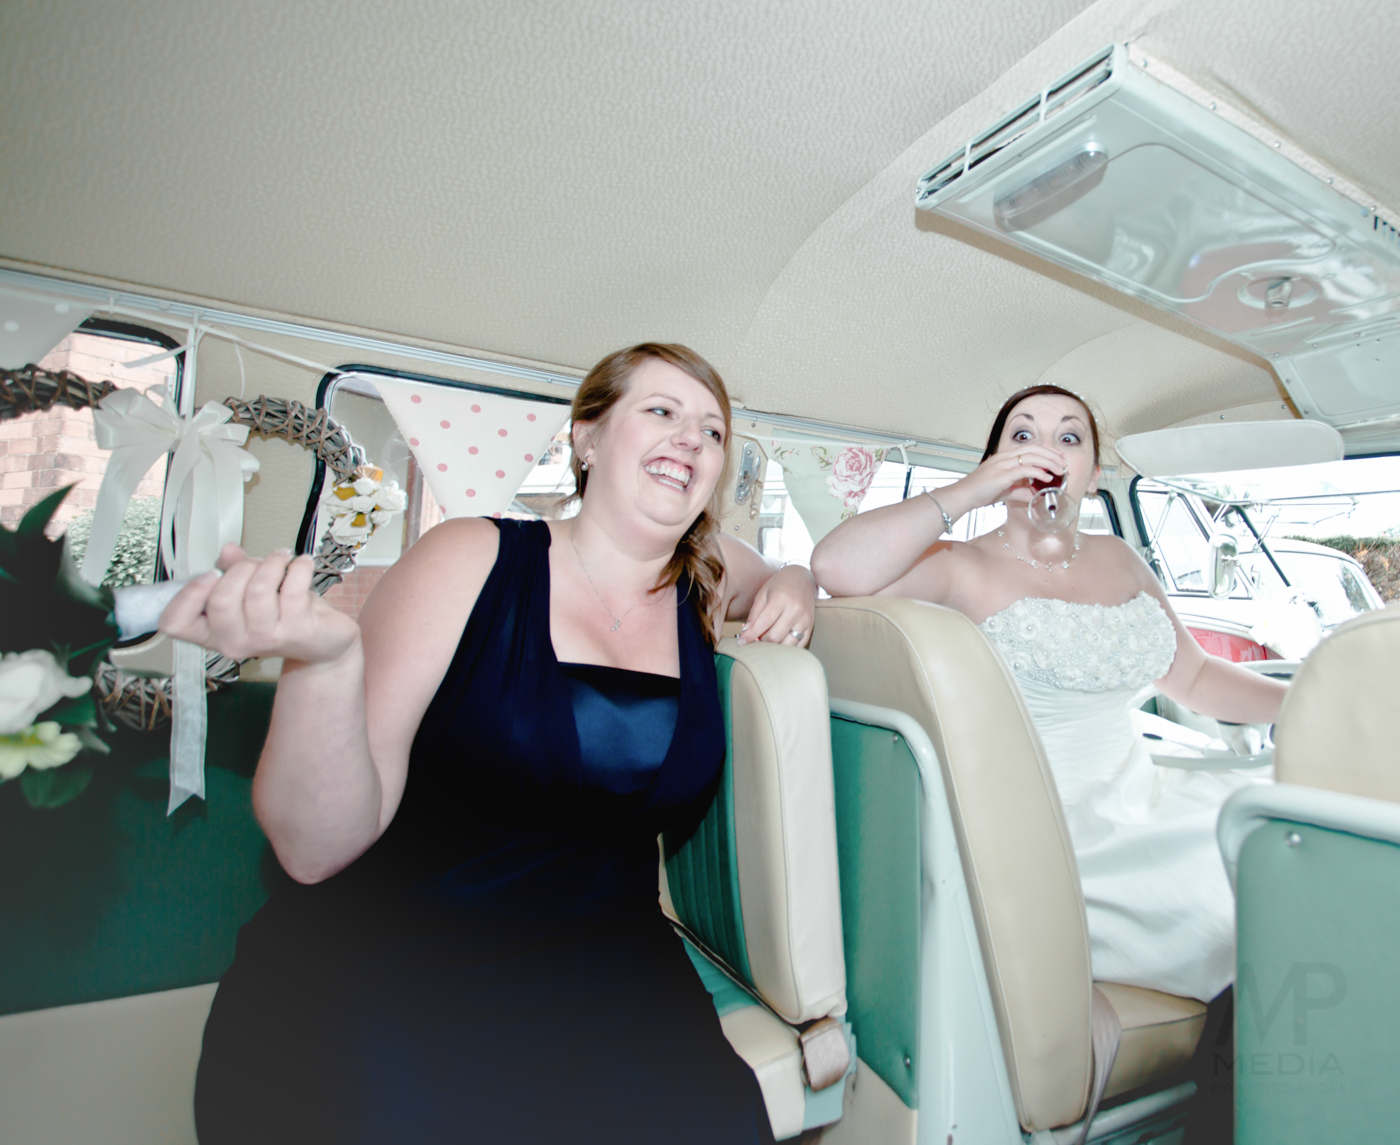 374 - Chris and Natalies Wedding (MAIN) - DO NOT SHARE THIS IMAGES ONLINE -0695.JPG